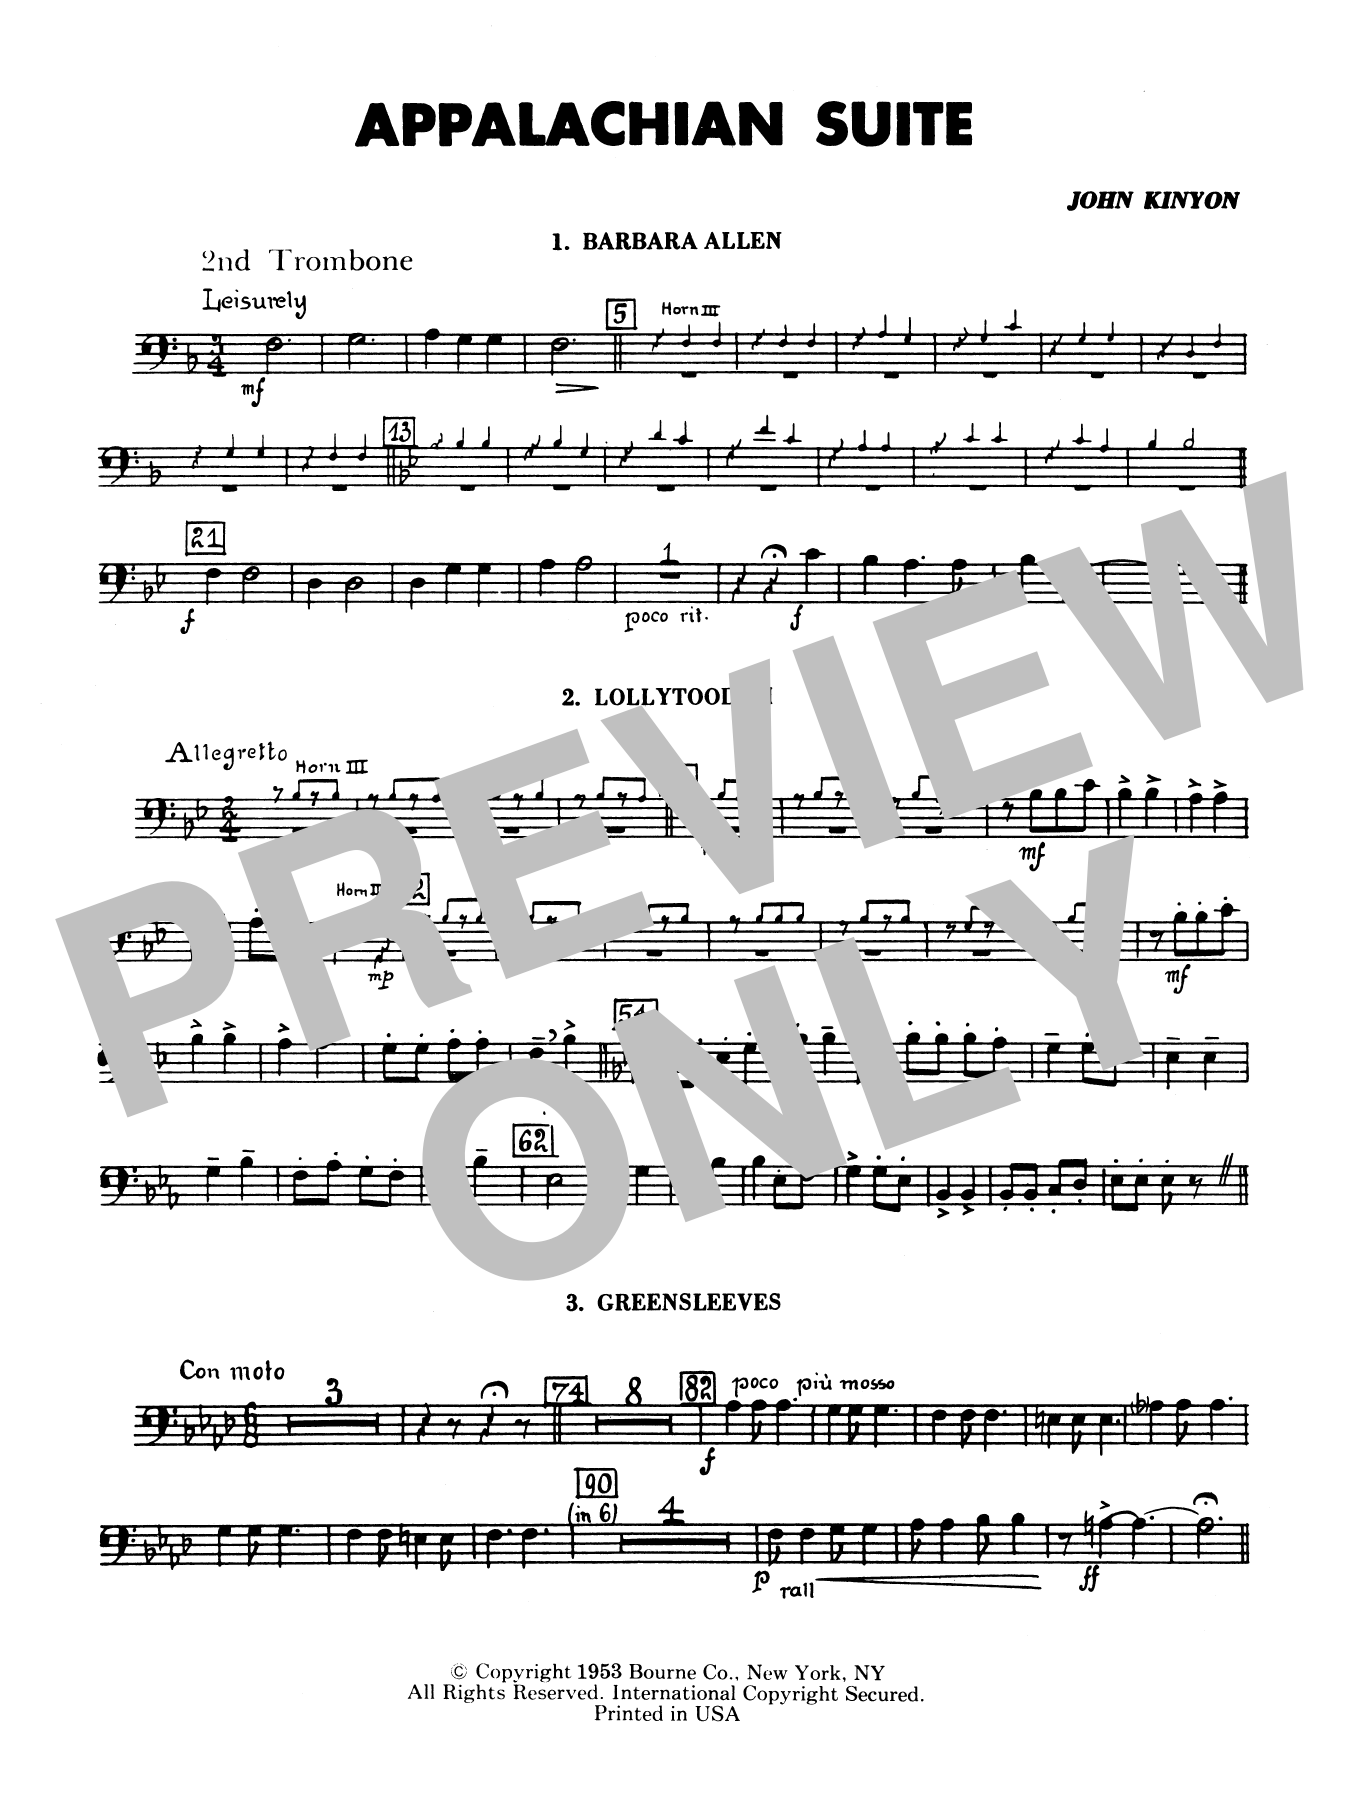 Appalachian Suite - 2nd Trombone